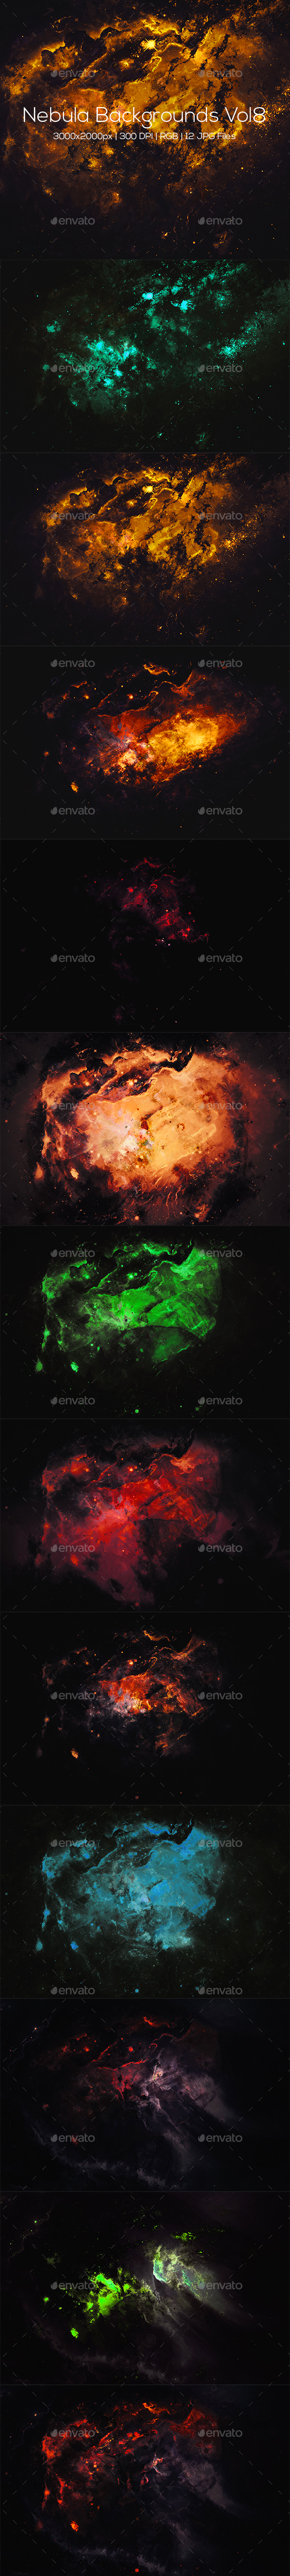 Nebula Backgrounds Vol8 - Abstract Backgrounds